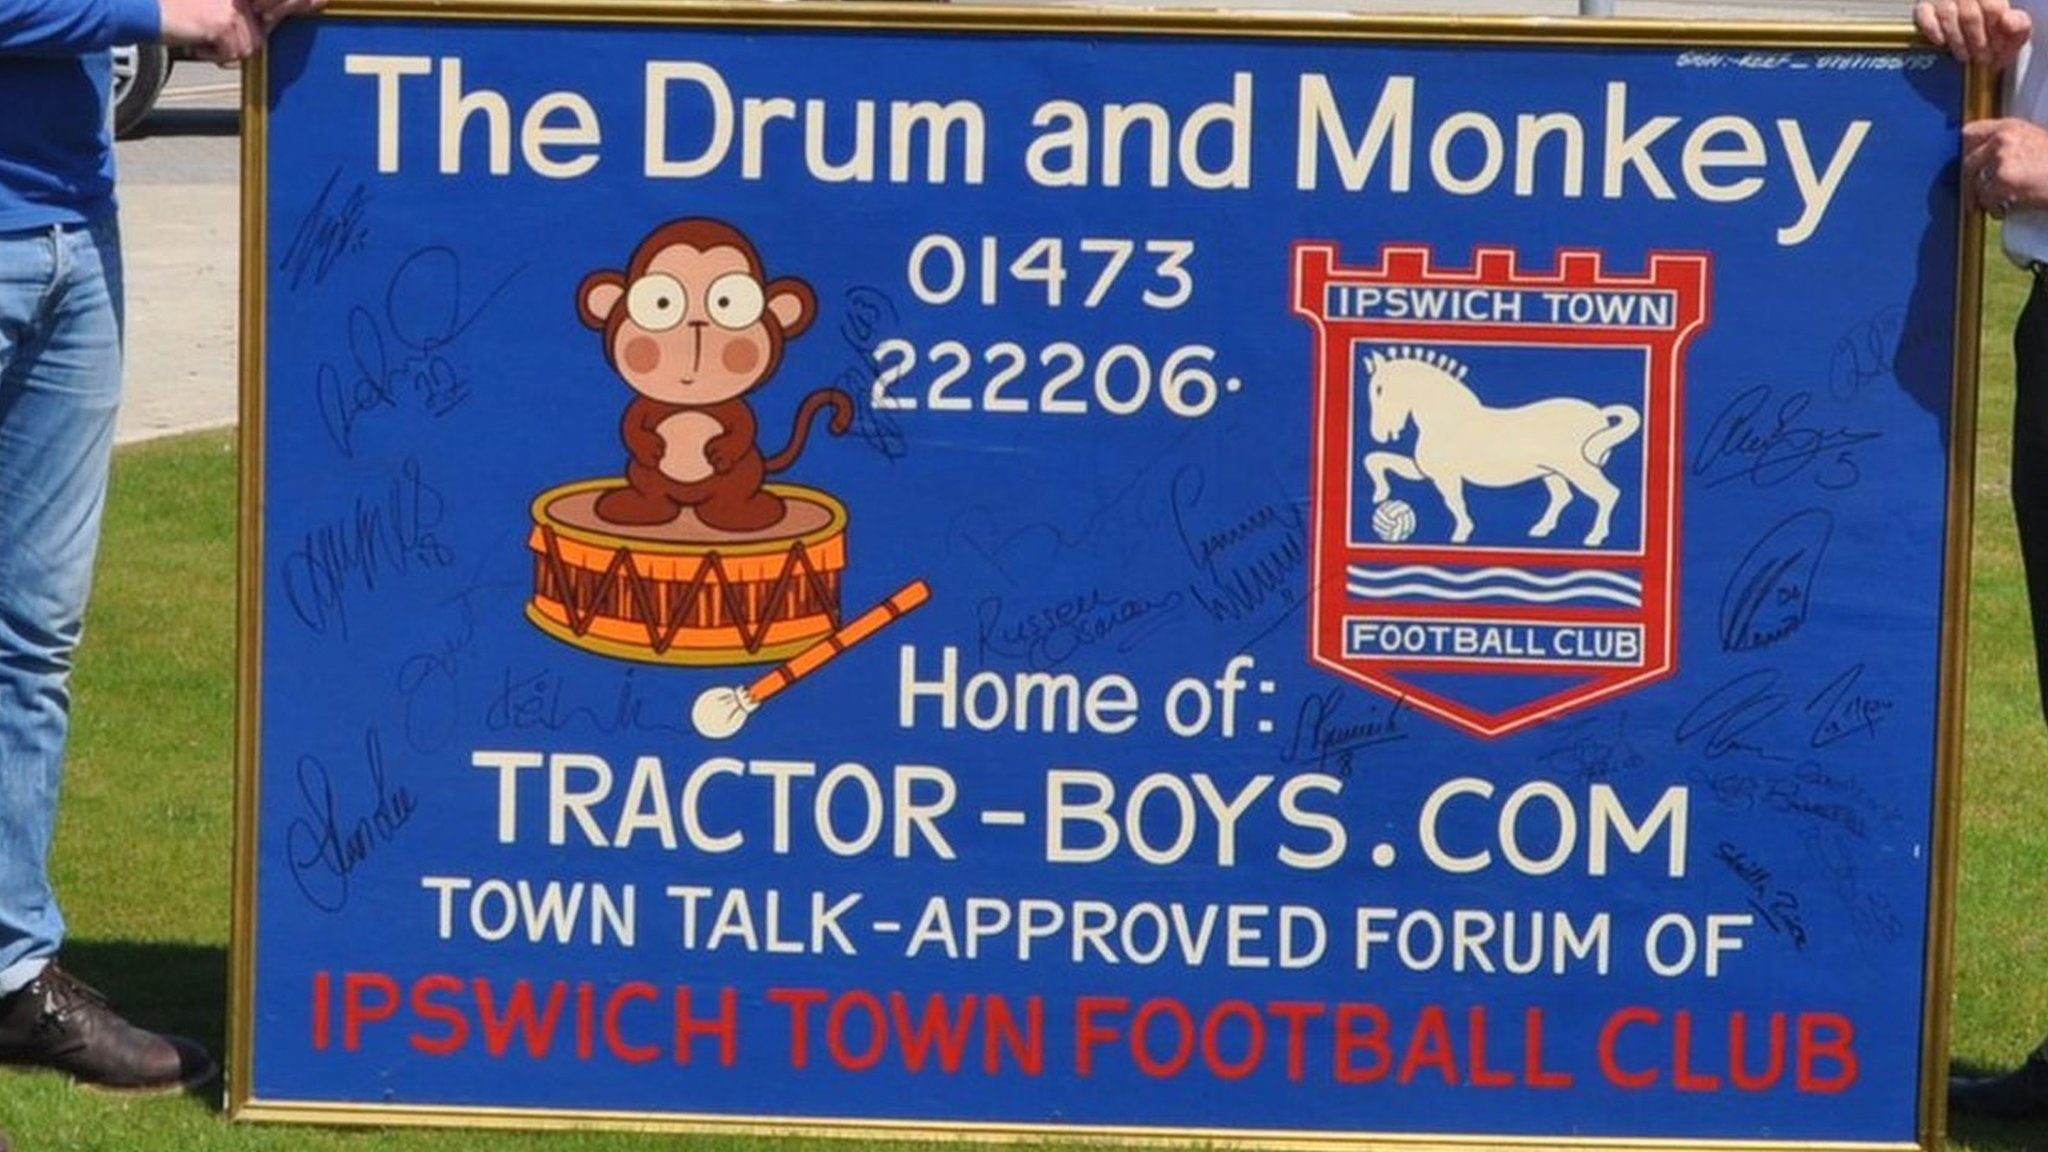 Ipswich Town autographed Drum and Monkey painting saved